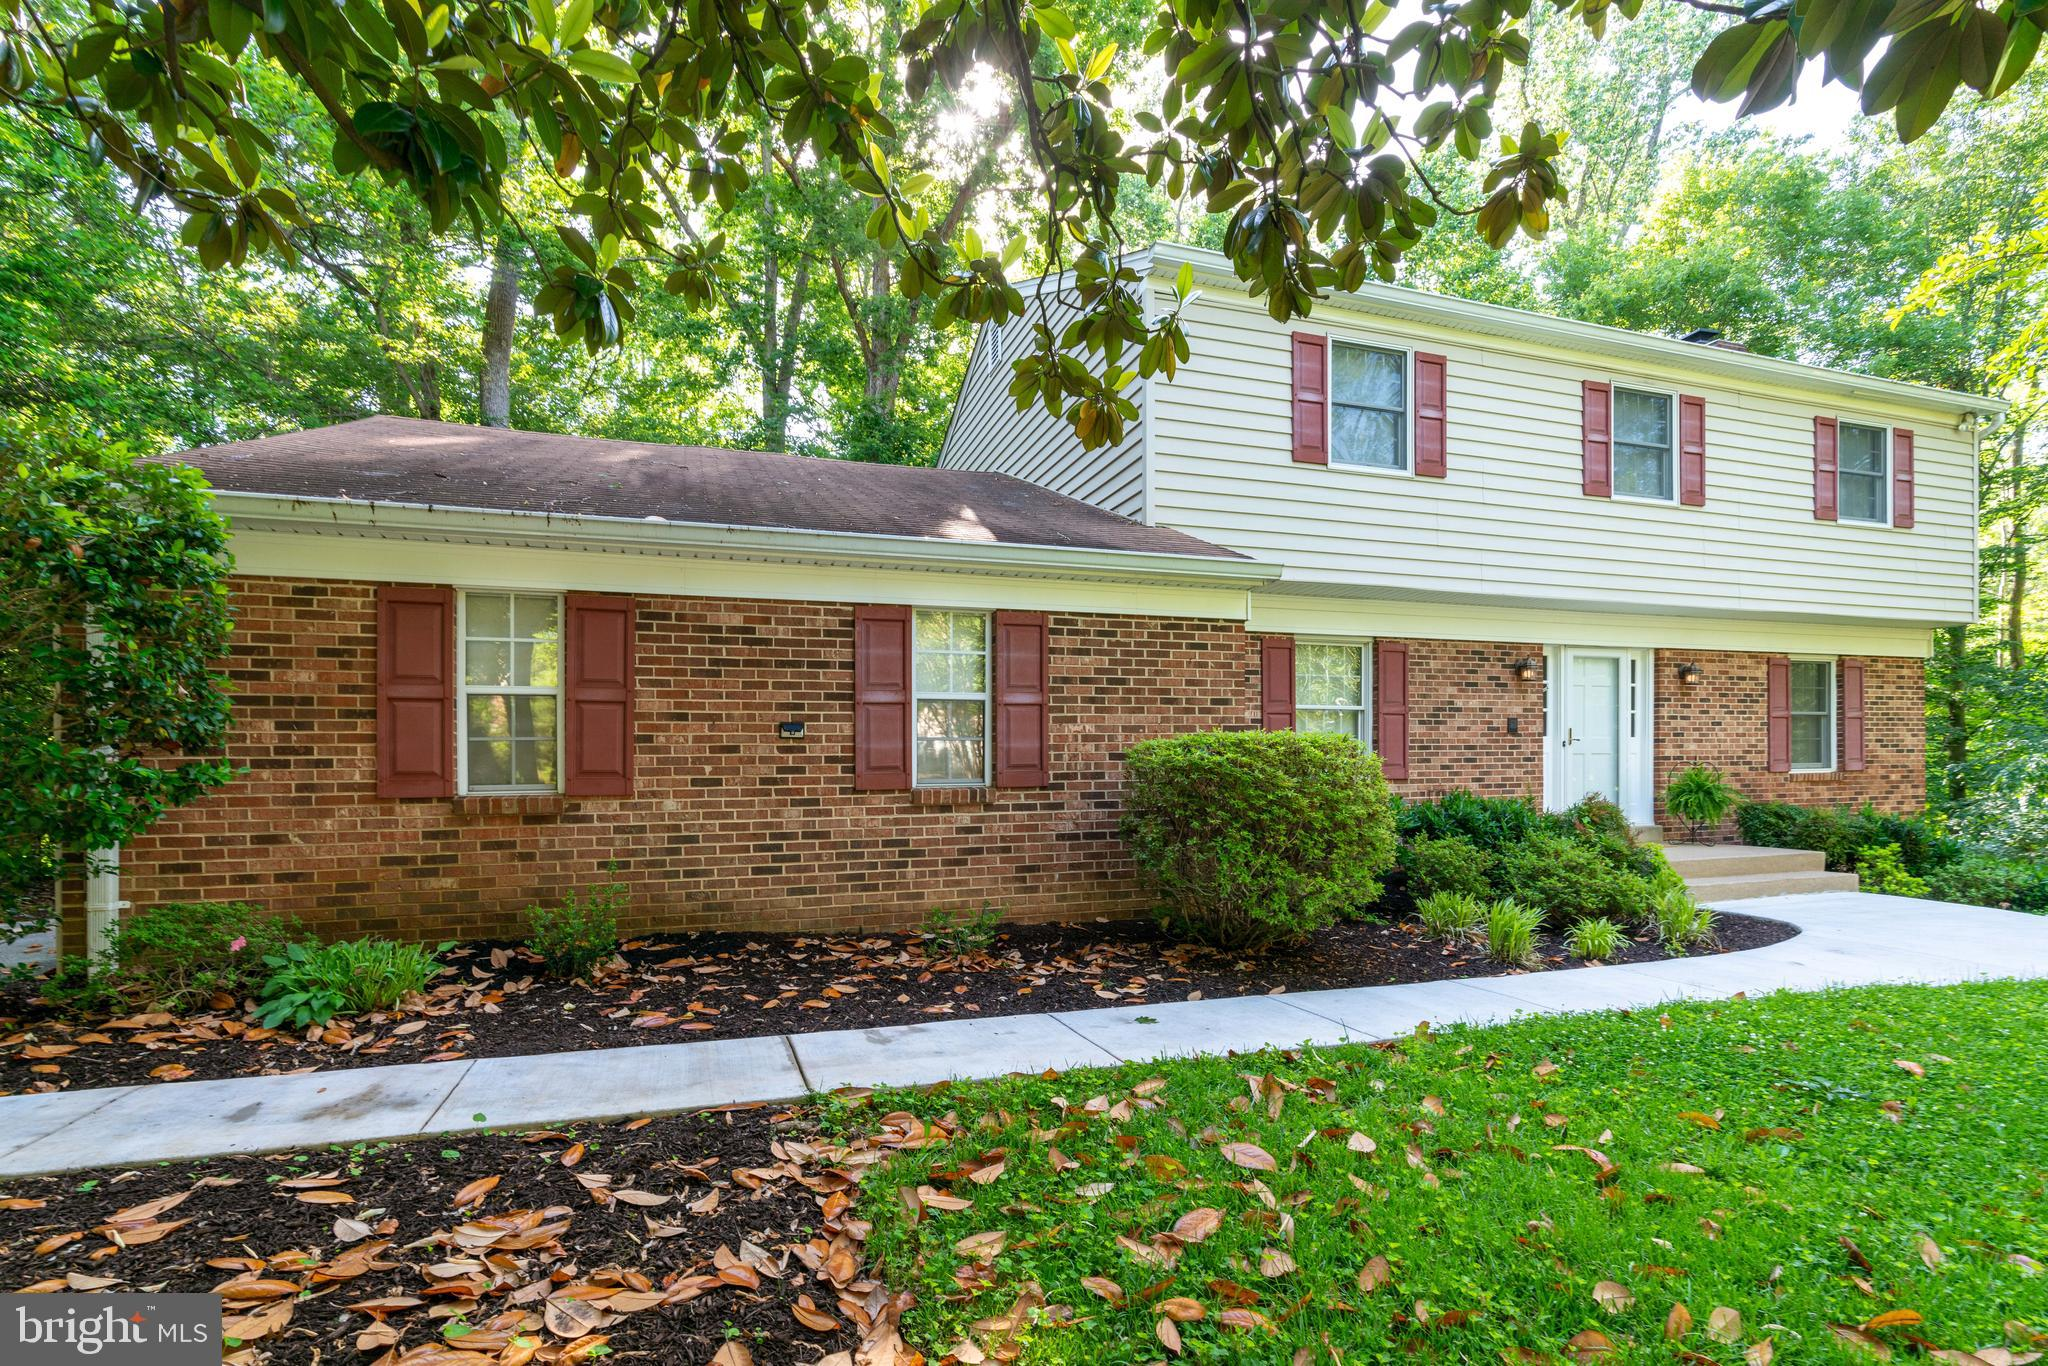 Looking for a lovely colonial on a private cul-de-sac that feeds into South County? Look no further.  Freshly painted, refinished hardwoods, newer carpet and lots of updates.  Open kitchen, nook, family room floor plan.  Relax in front of the wood fireplace under the vaulted ceilings in the family room.  Fabulous walk-out lower level with wet bar and gas fireplace.Backs to Pohick Creek and Cross County Trail.  Side entry garage and fenced back yard with room to expand. Prime location ~ close to nature parks & trails, close to military bases and convenient for commuters.